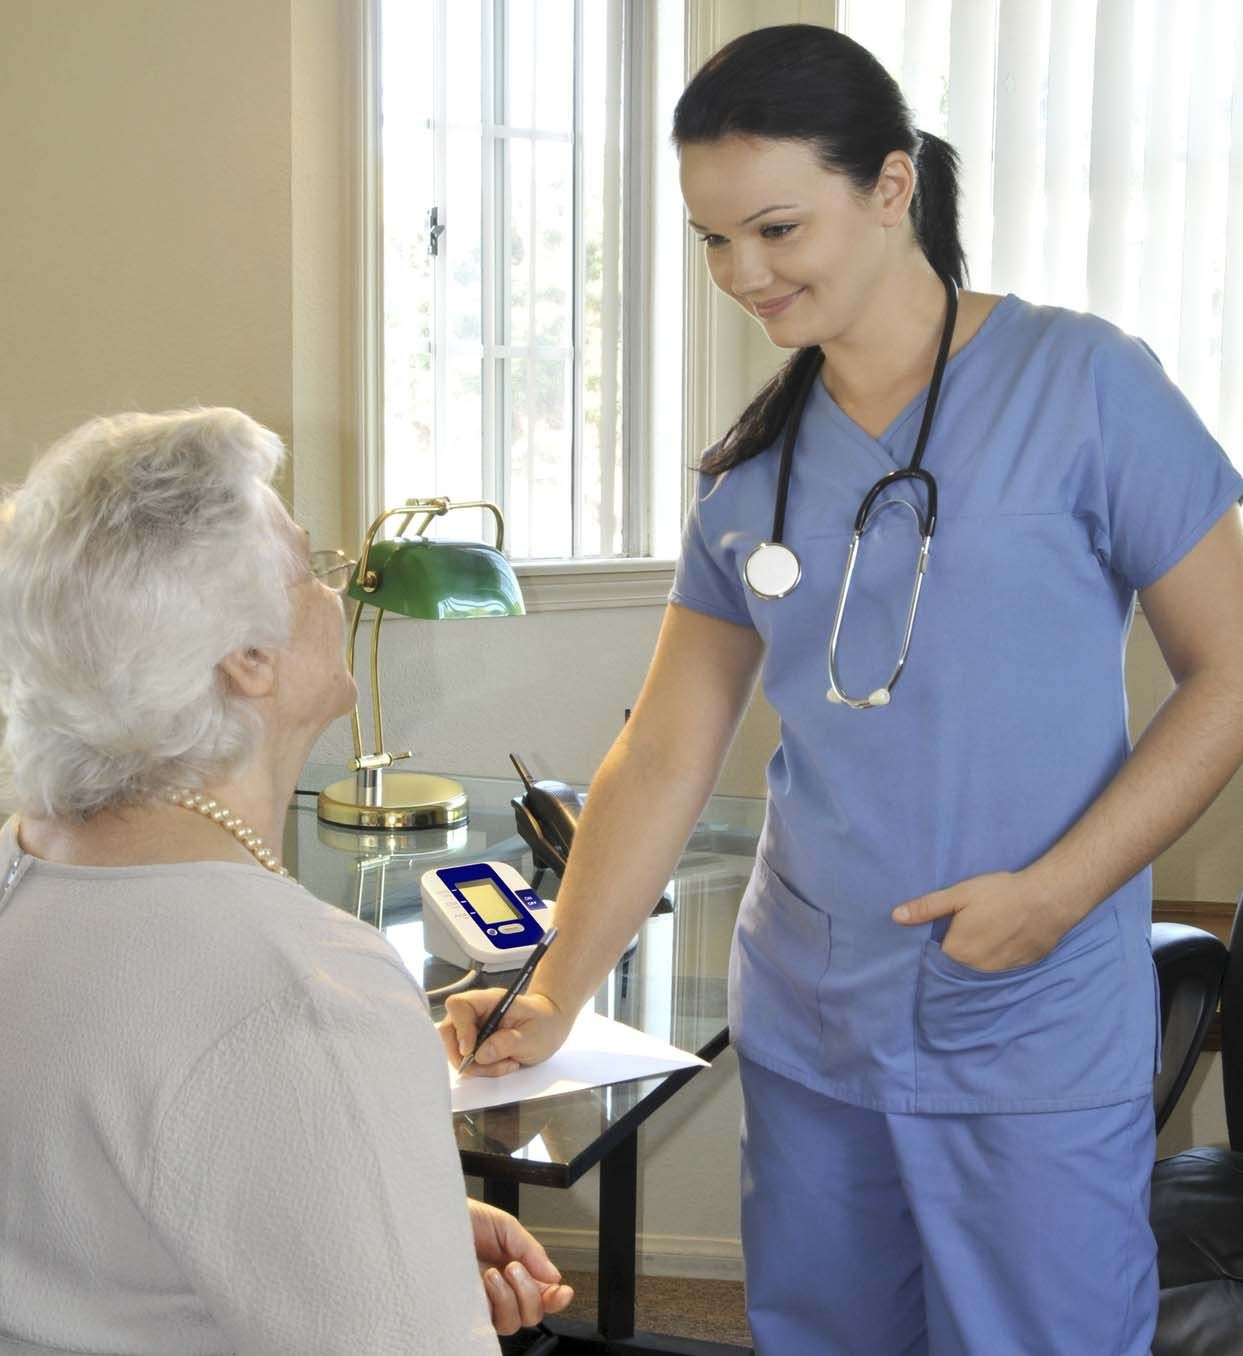 registered nurses perform a variety of functions nurse